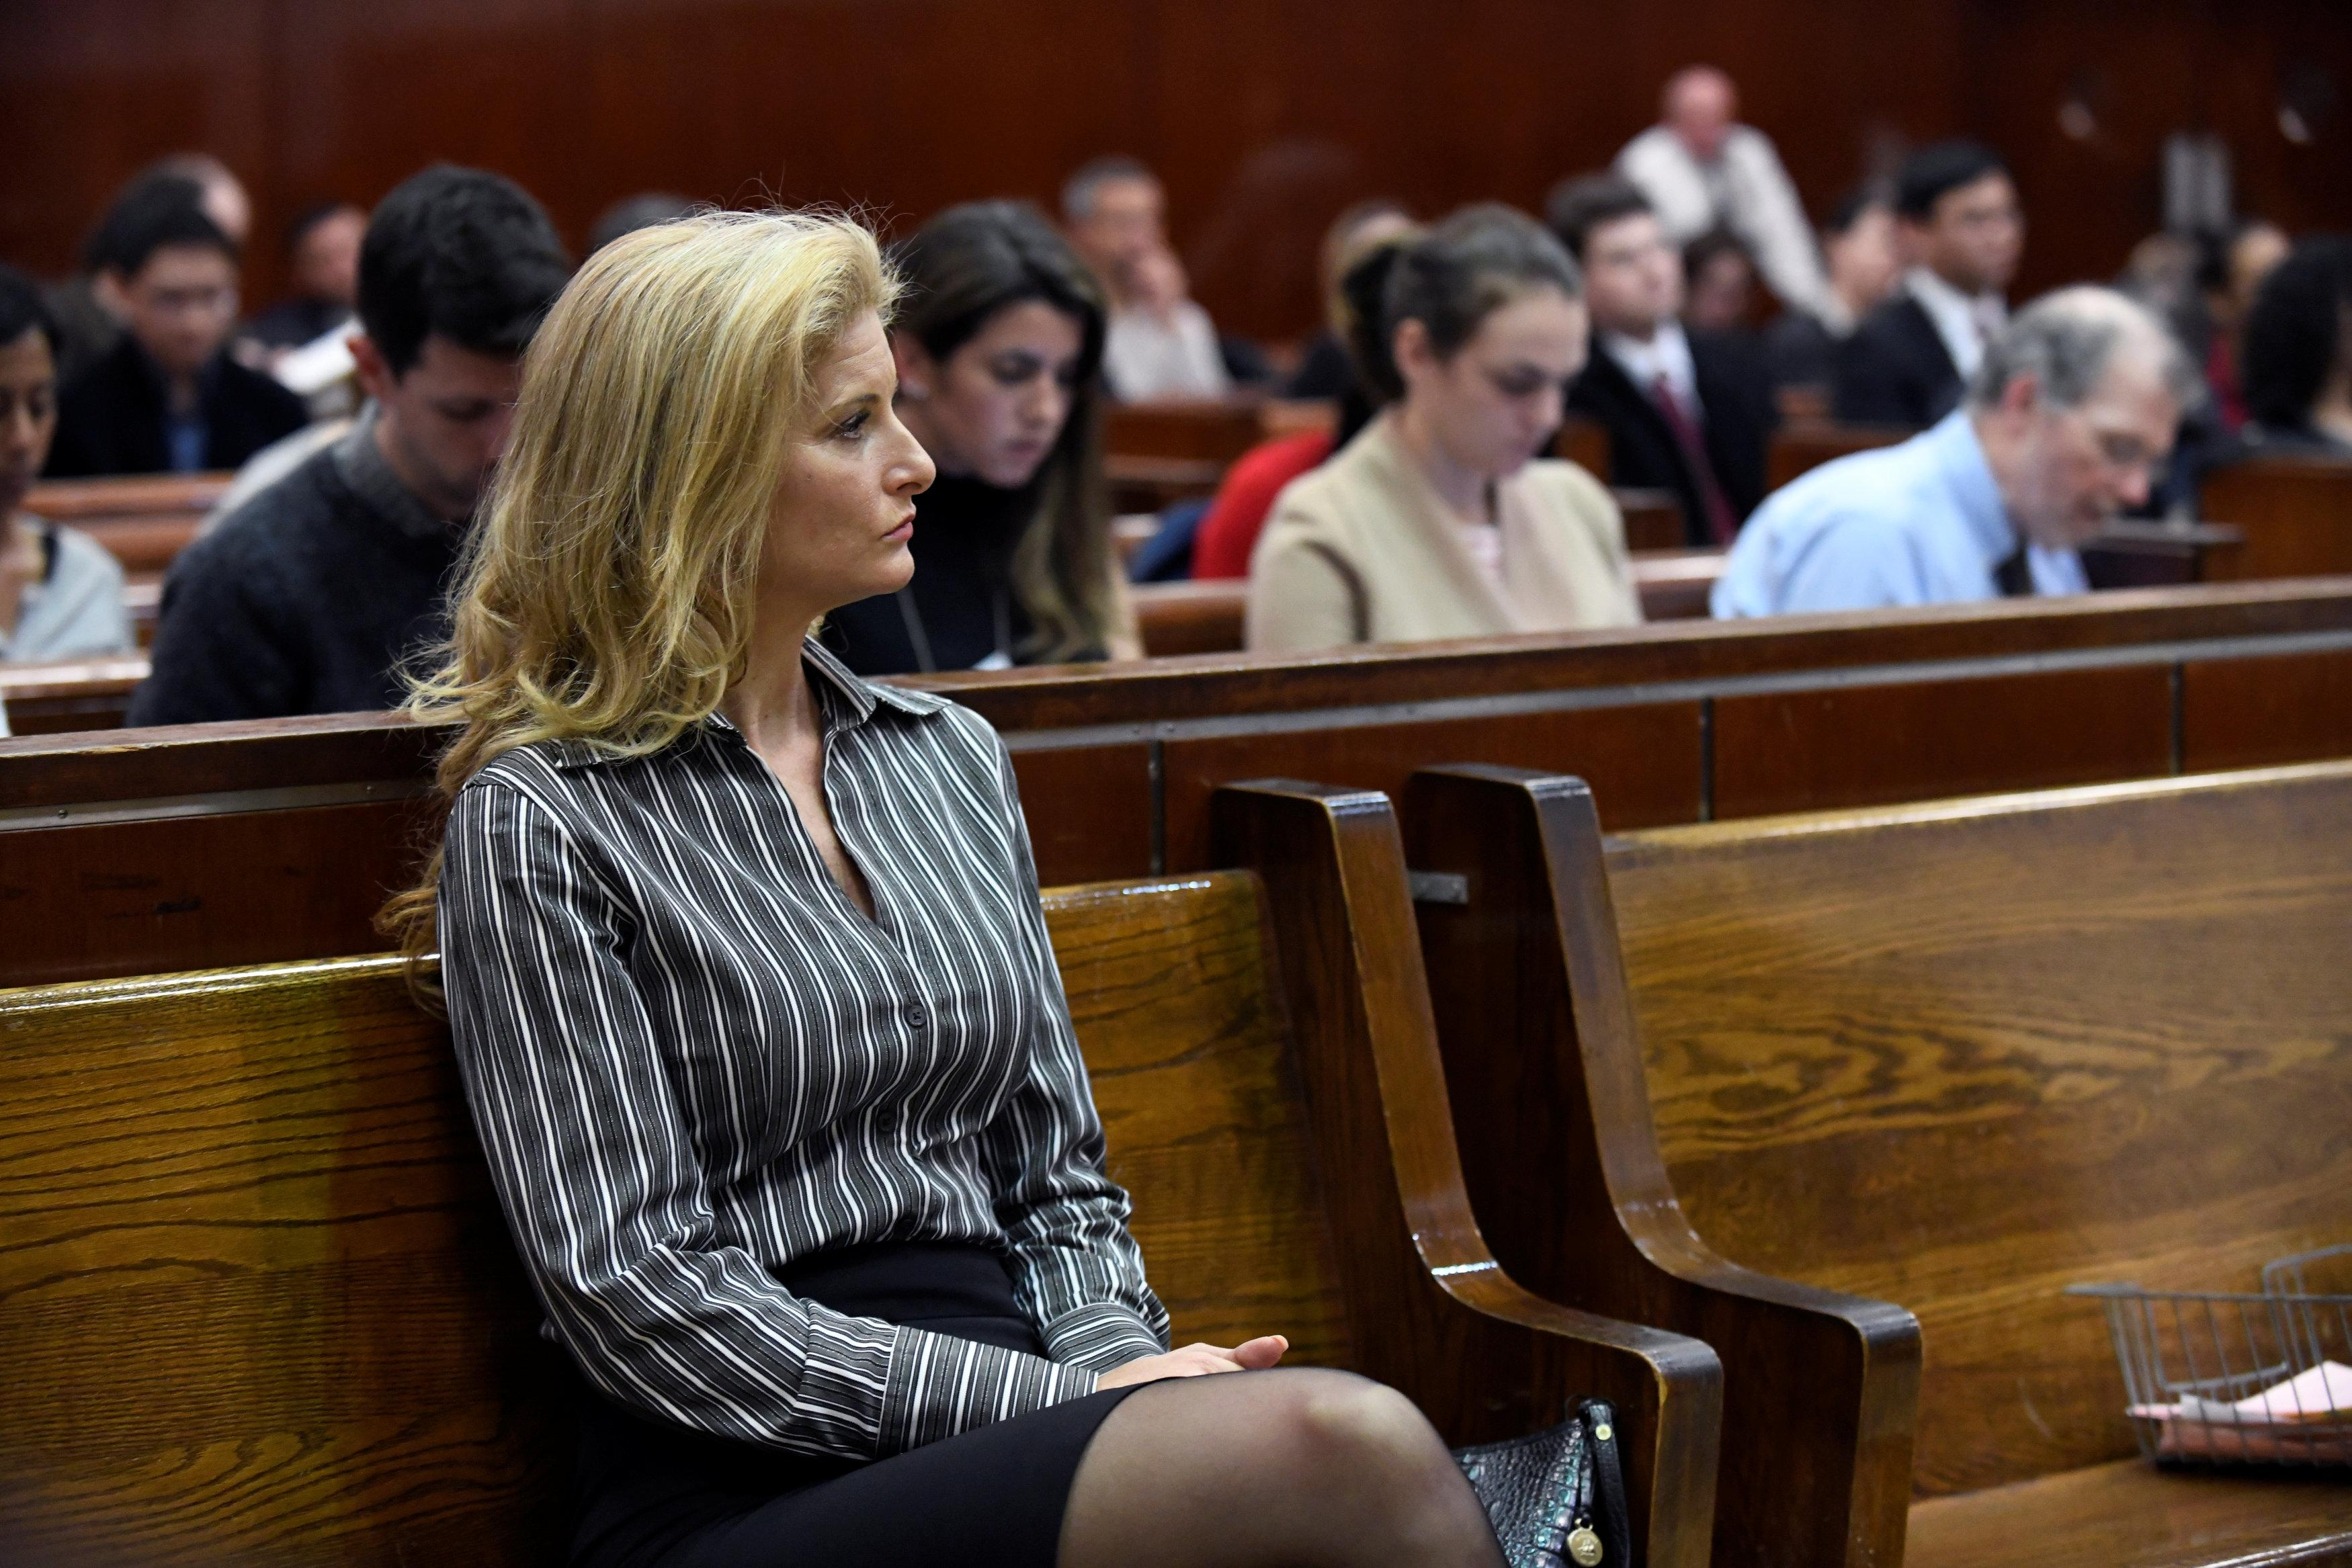 Summer Zervos, a former contestant on The Apprentice, appears in New York State Supreme Court during a hearing on a defamation case against U.S. President Donald Trump in Manhattan, New York, U.S., December 5, 2017. Barry Williams/Pool